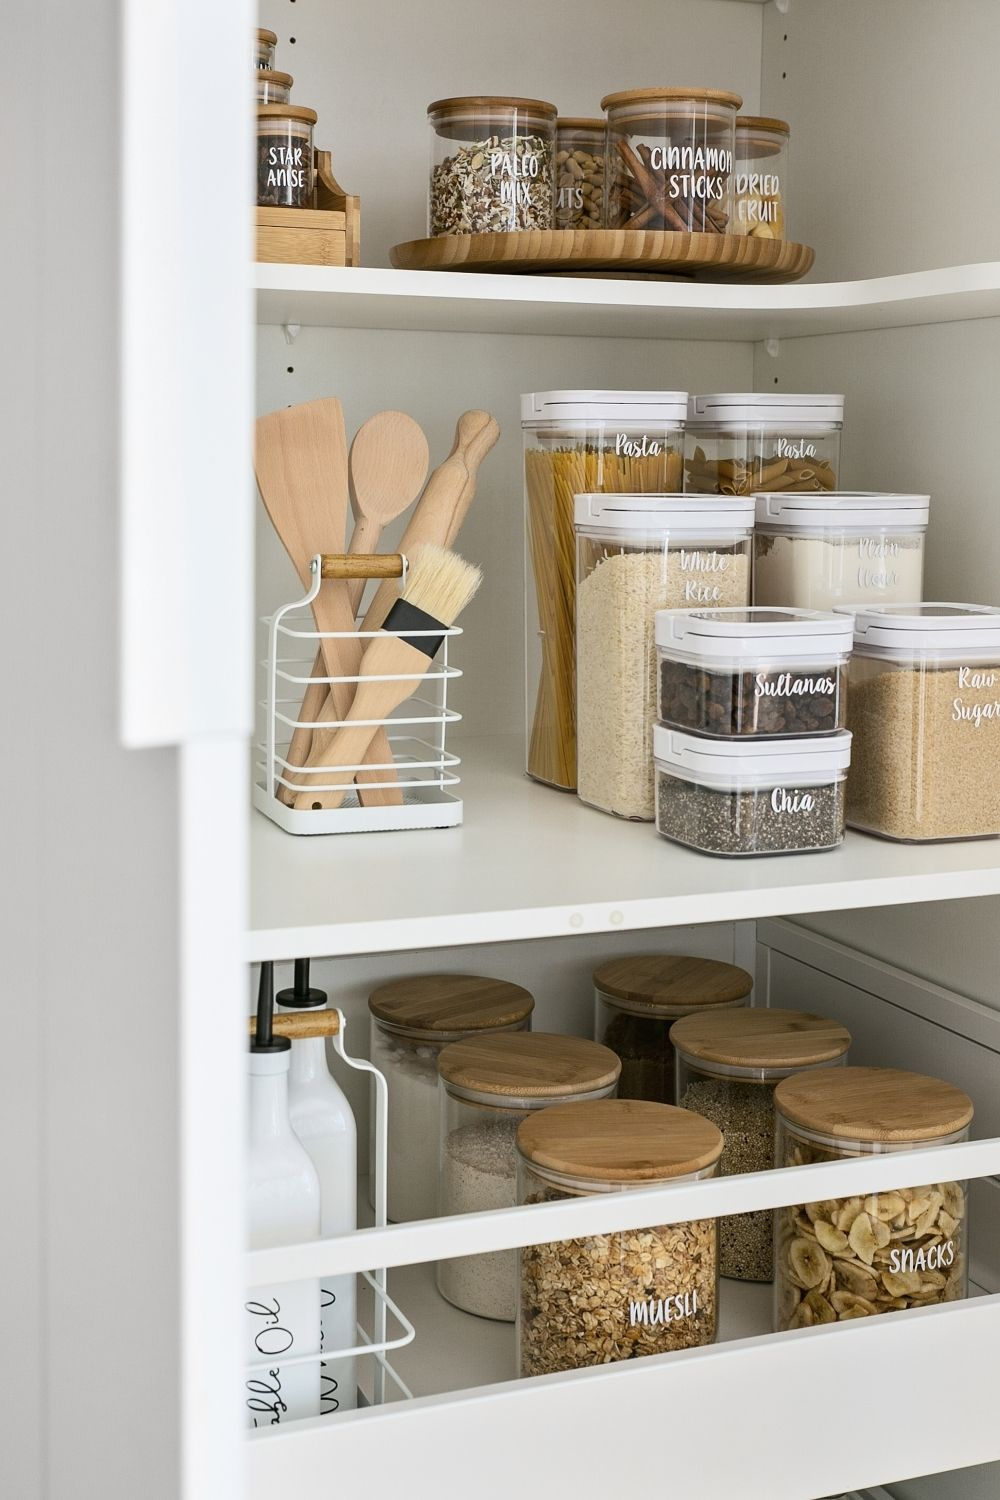 Home Organisation Labels Storage Solutions Little Label Co Kitchen Organization Diy Home Organisation Home Decor Kitchen